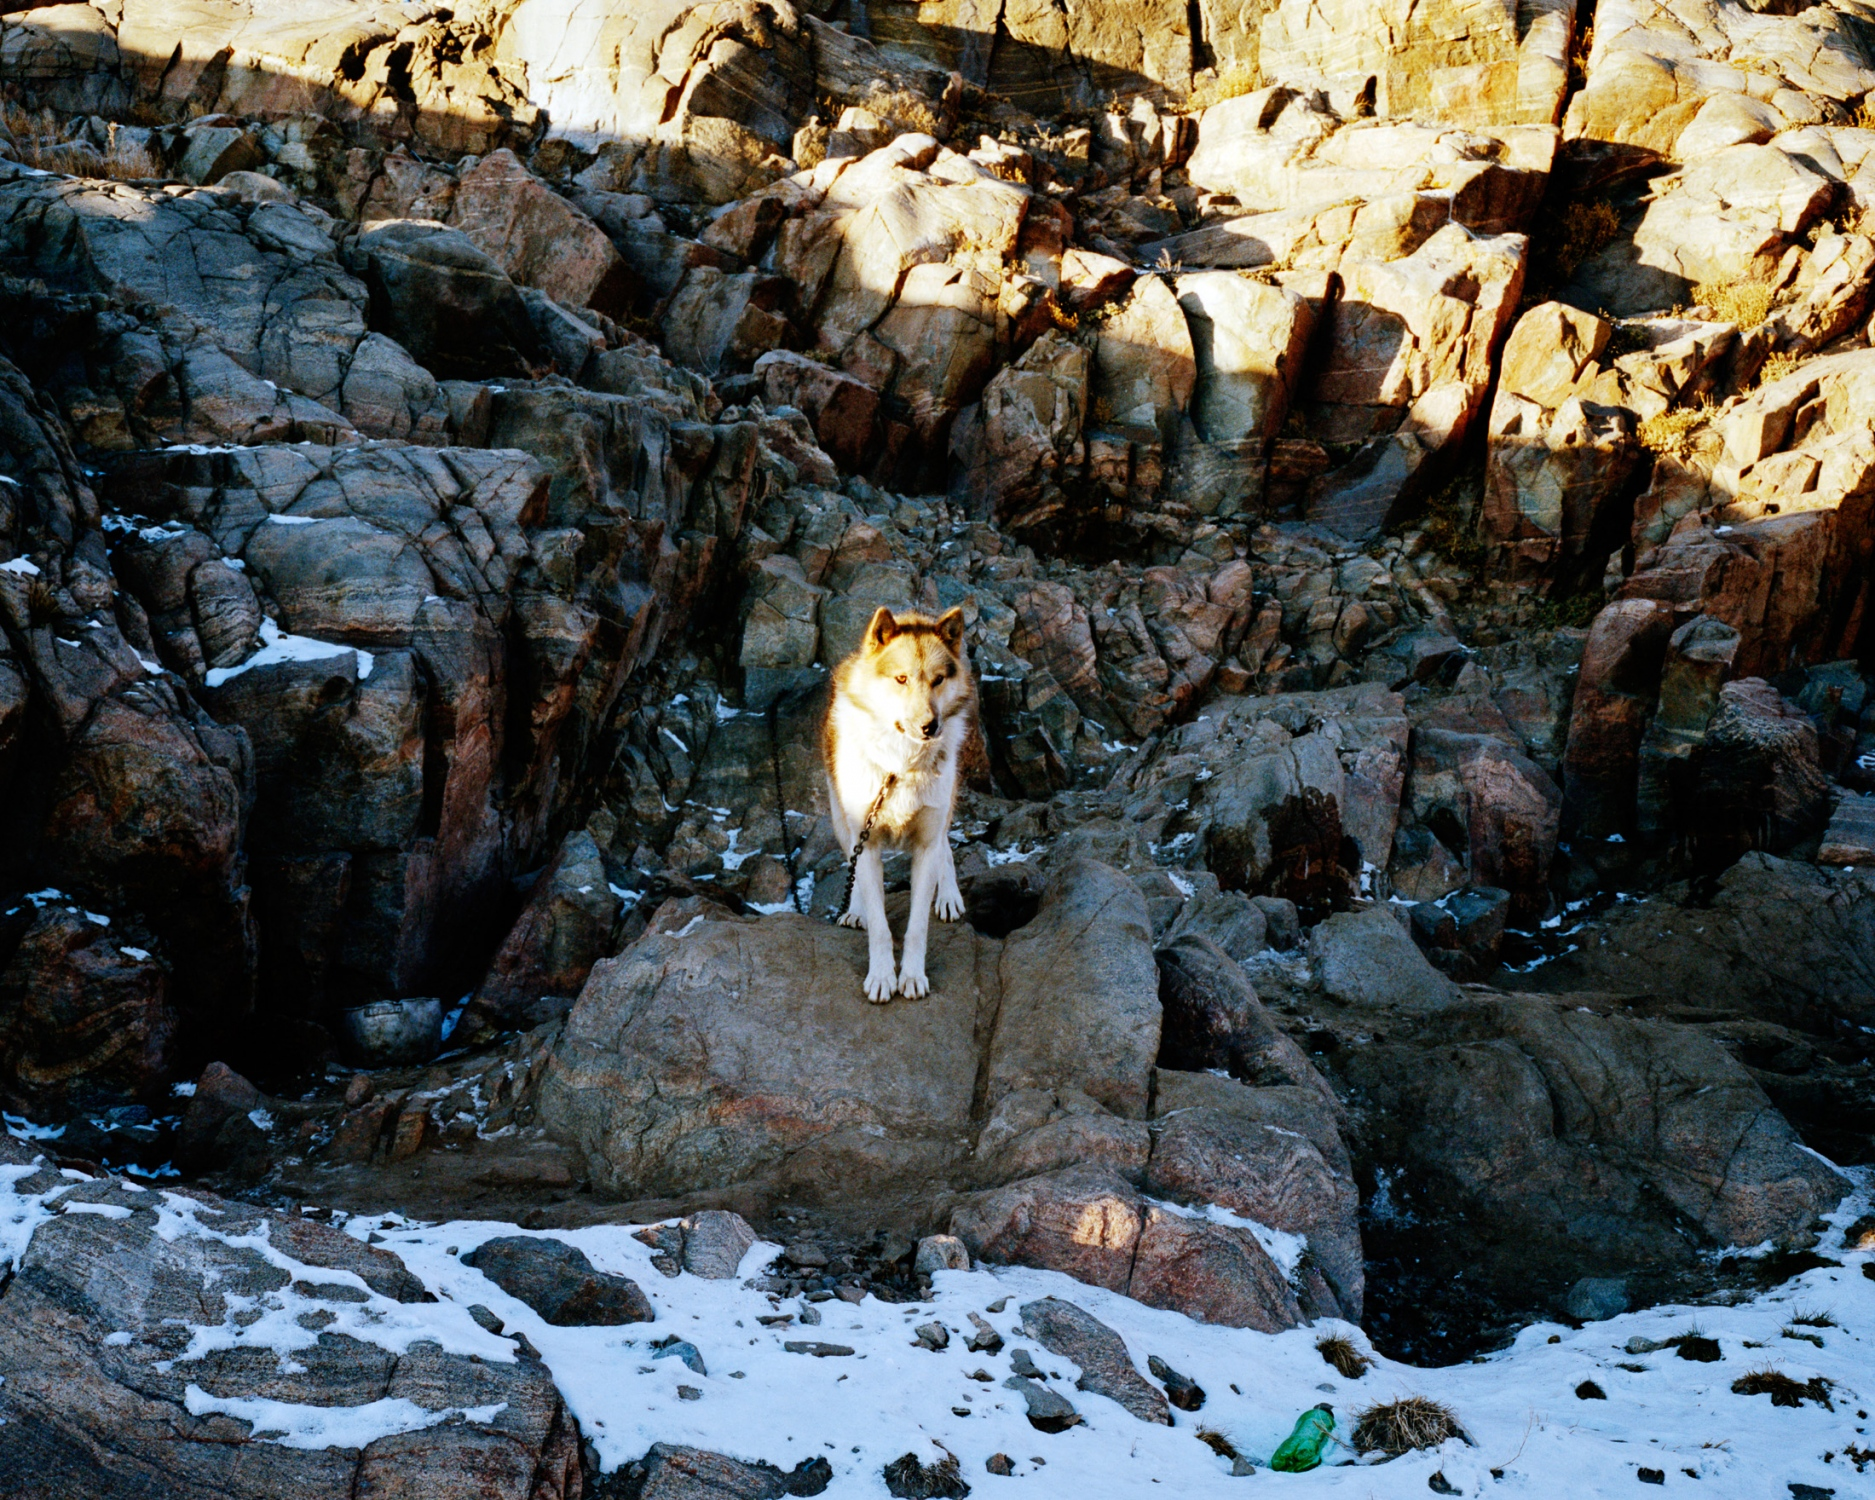 Sled dog of Uummannaq a village populated by hunters and fishermen. Dogs stay attached all year long excepted when they pull the sled.